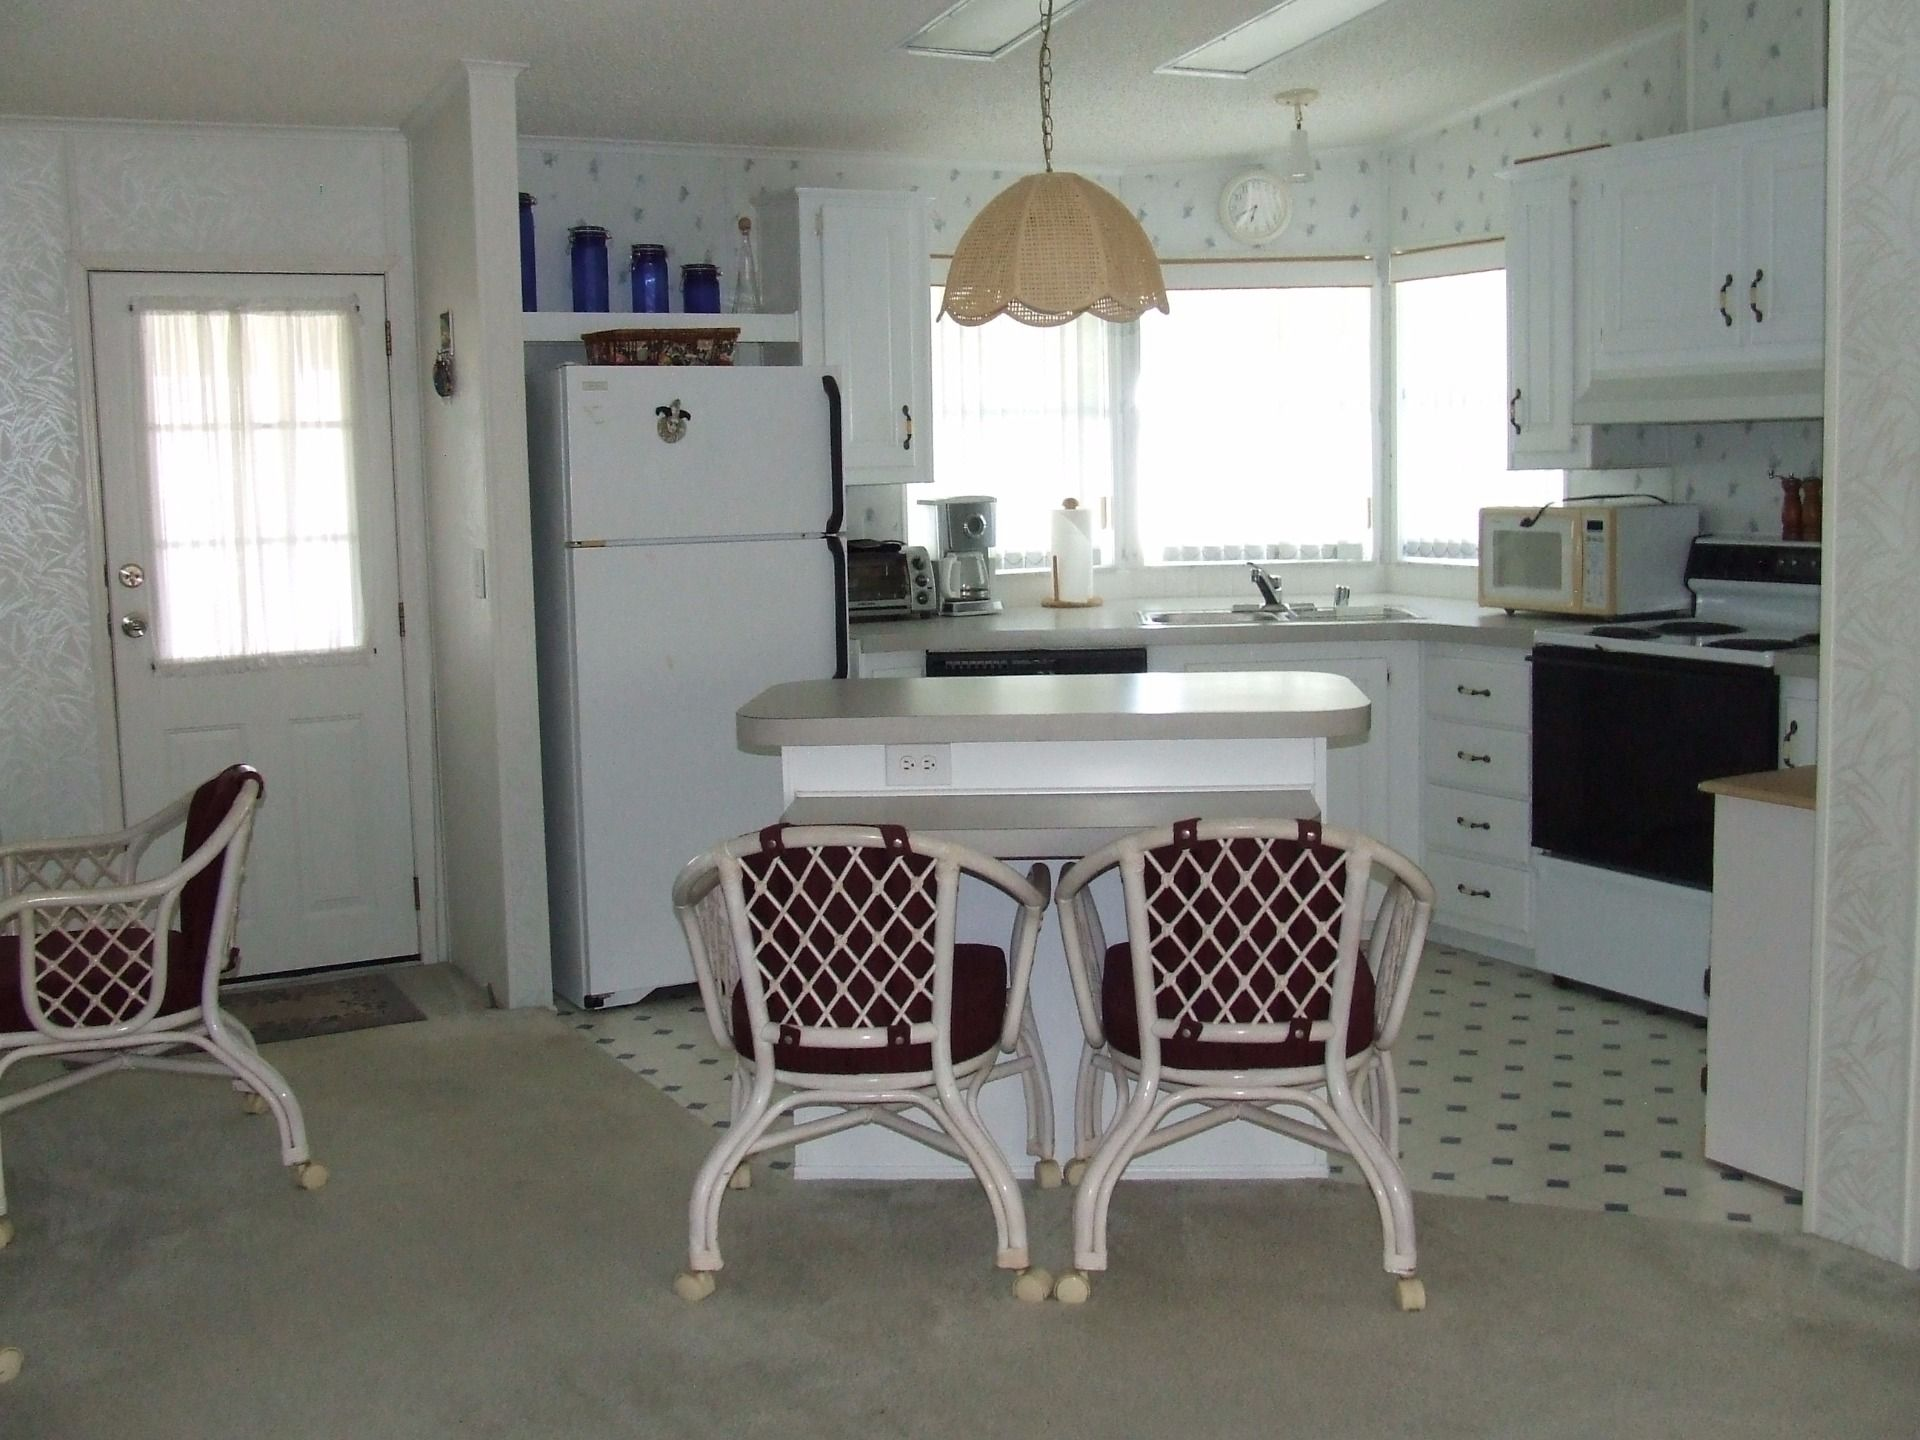 1997 Jacobson Mobile / Manufactured Home in Vero Beach, FL